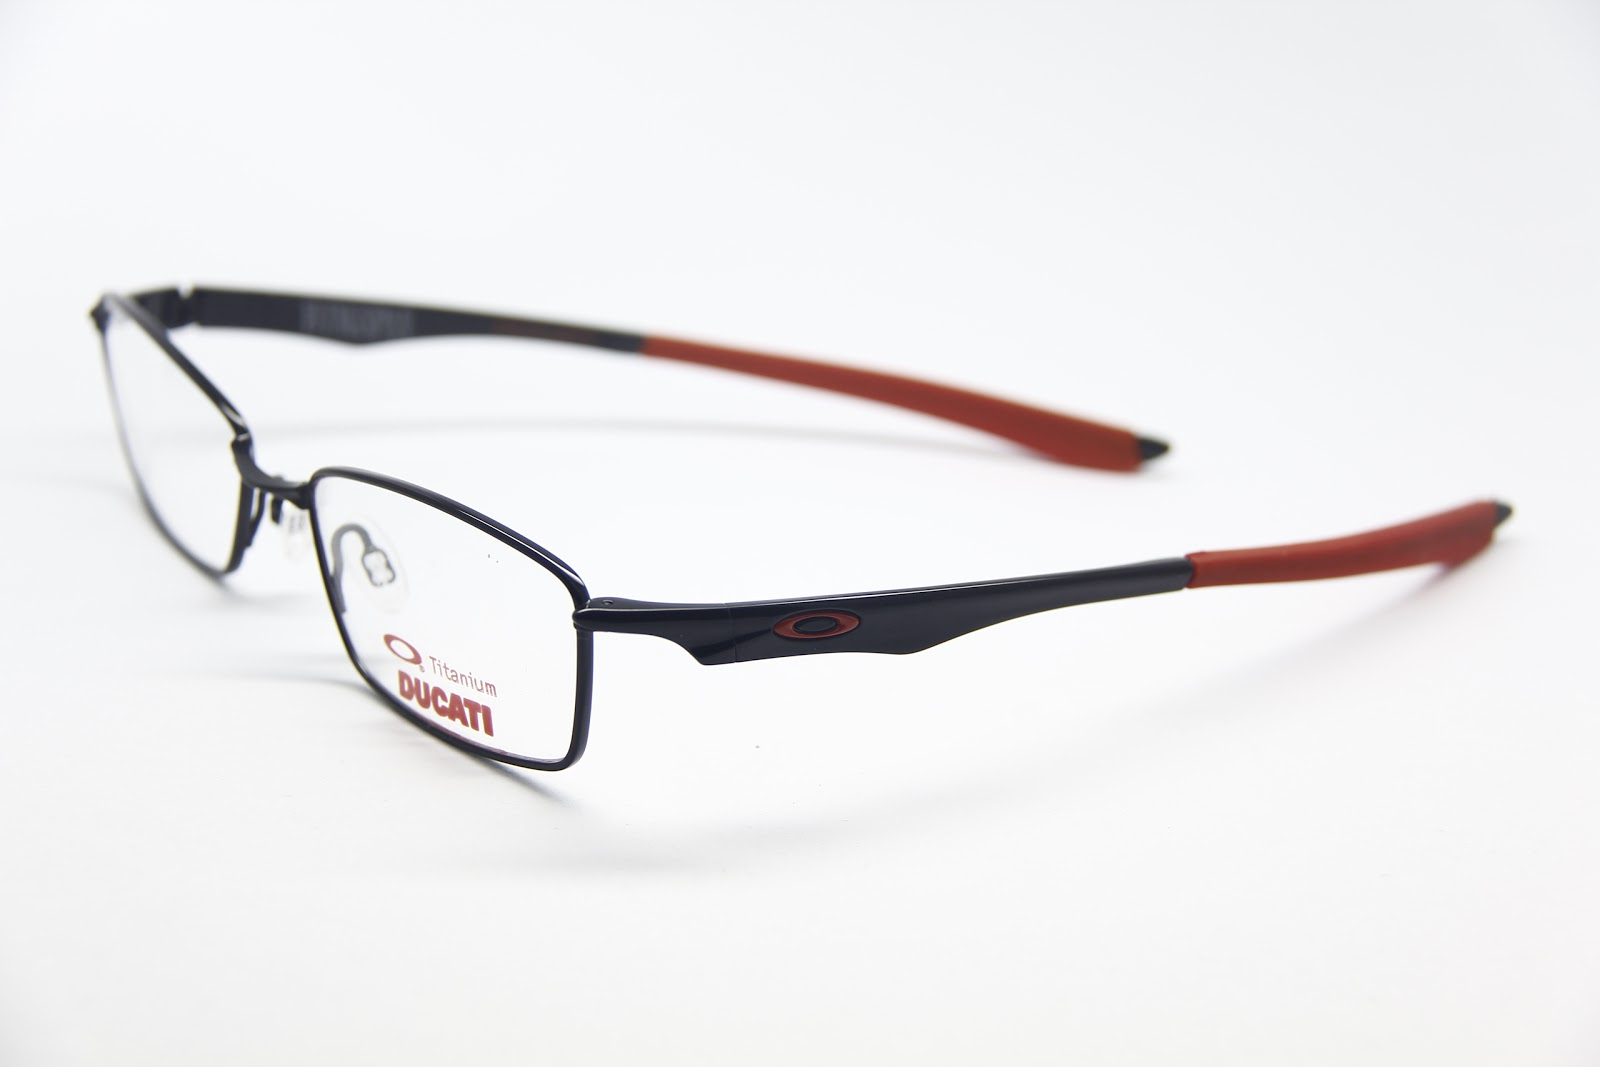 oakley singapore prescription glasses oakley wingspan